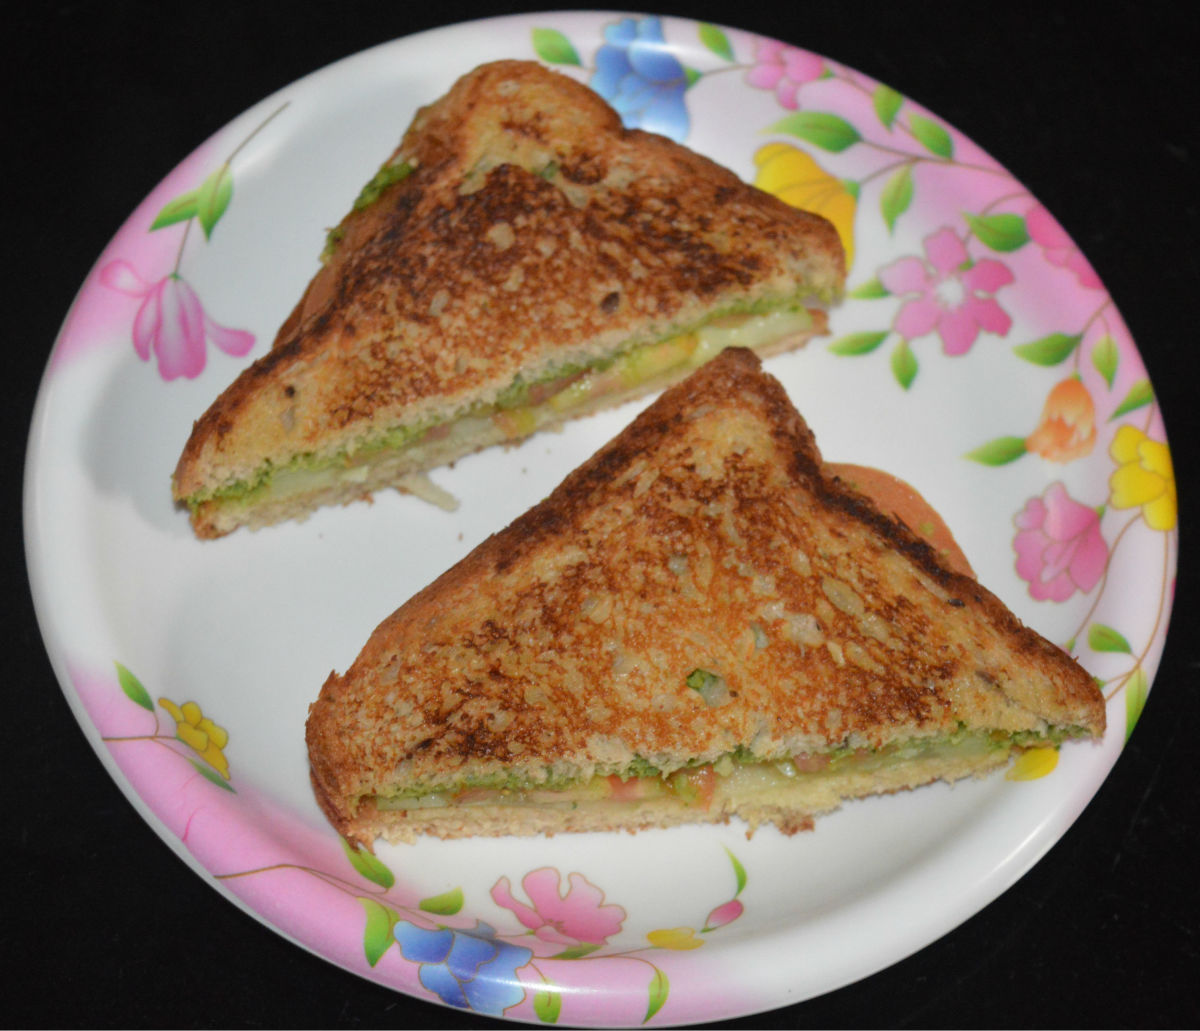 How to Make a Green Coriander Chutney Sandwich